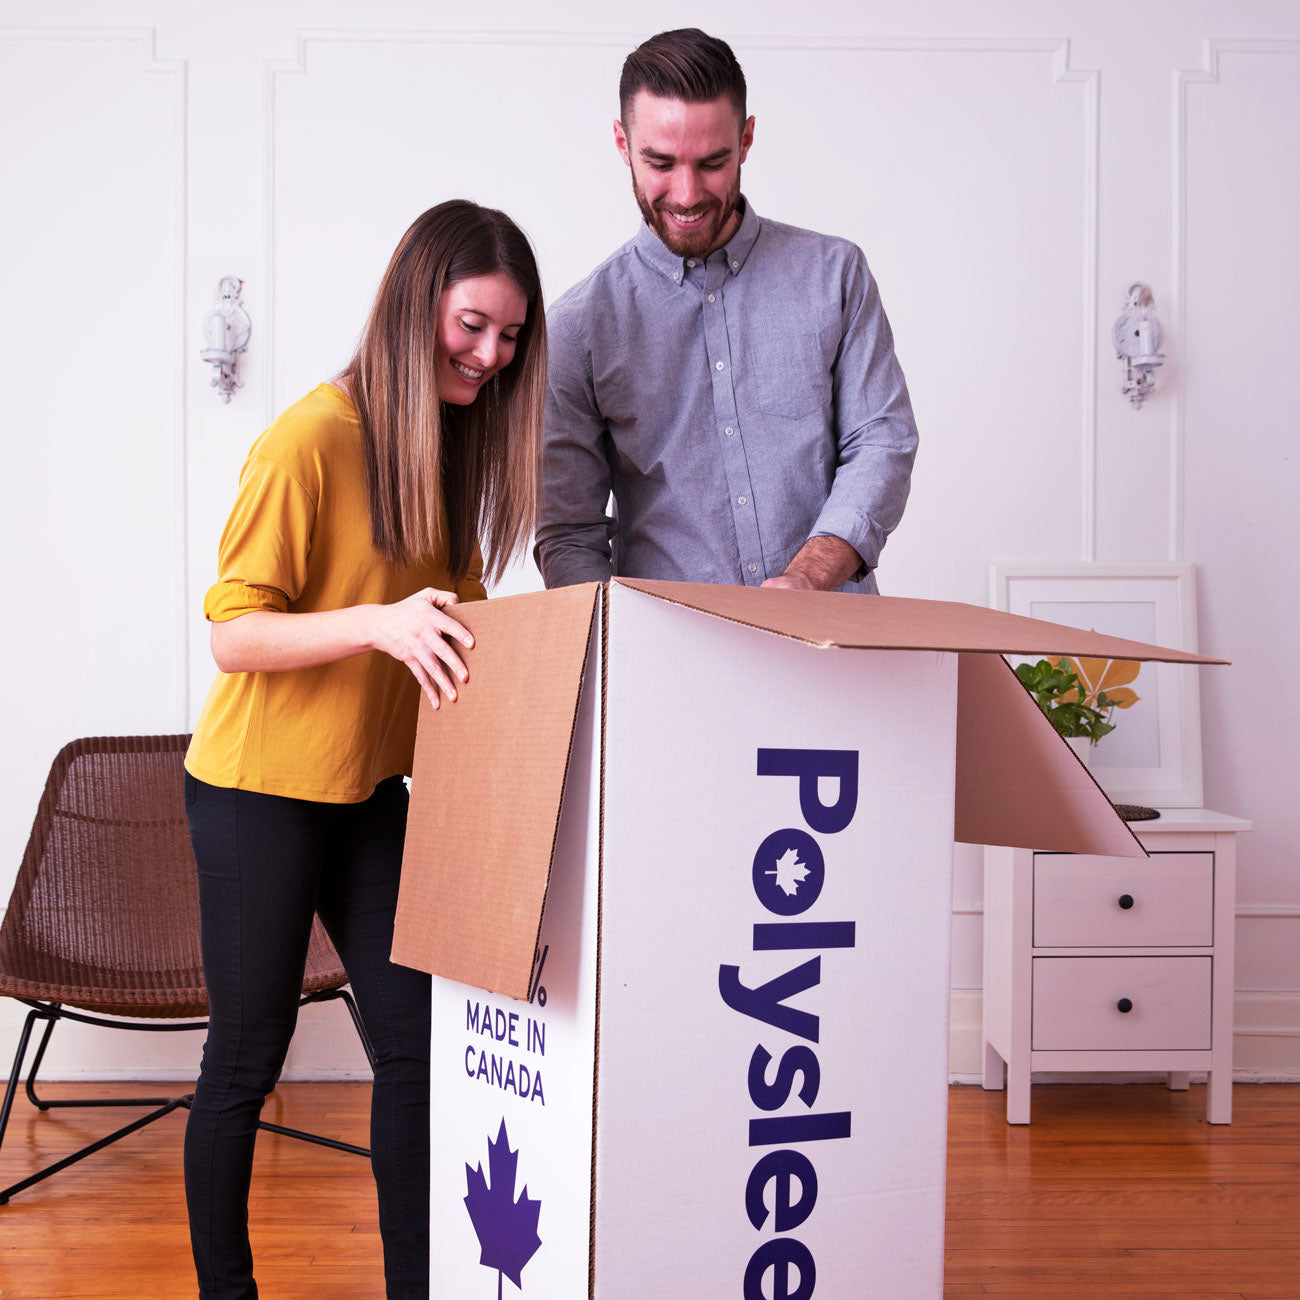 Our customers have just received their Polysleep foam mattress in Winnipeg and they are ready to install it